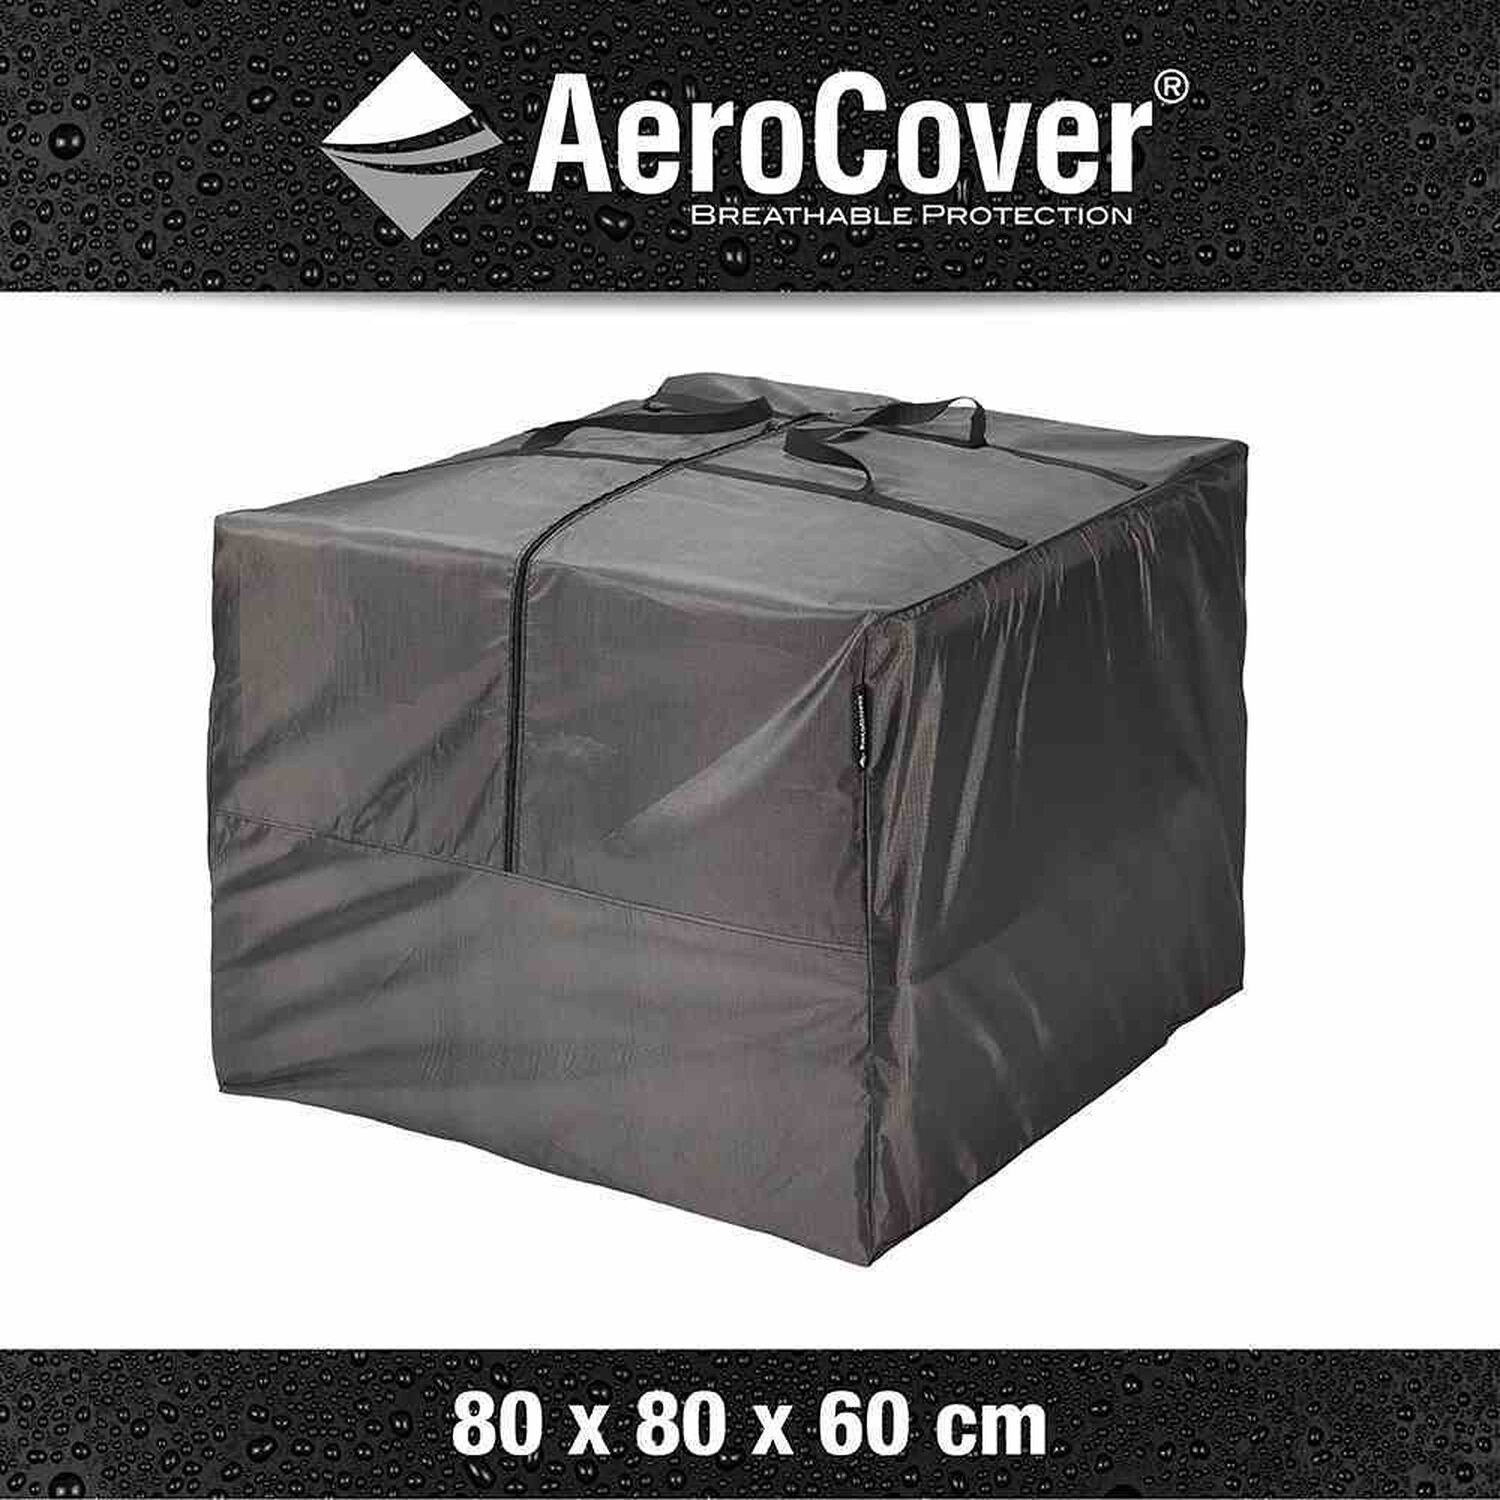 aerocover schutzh lle f r lounge kissen 60 cm x 80 cm x 80 cm anthrazit kaufen bei obi. Black Bedroom Furniture Sets. Home Design Ideas